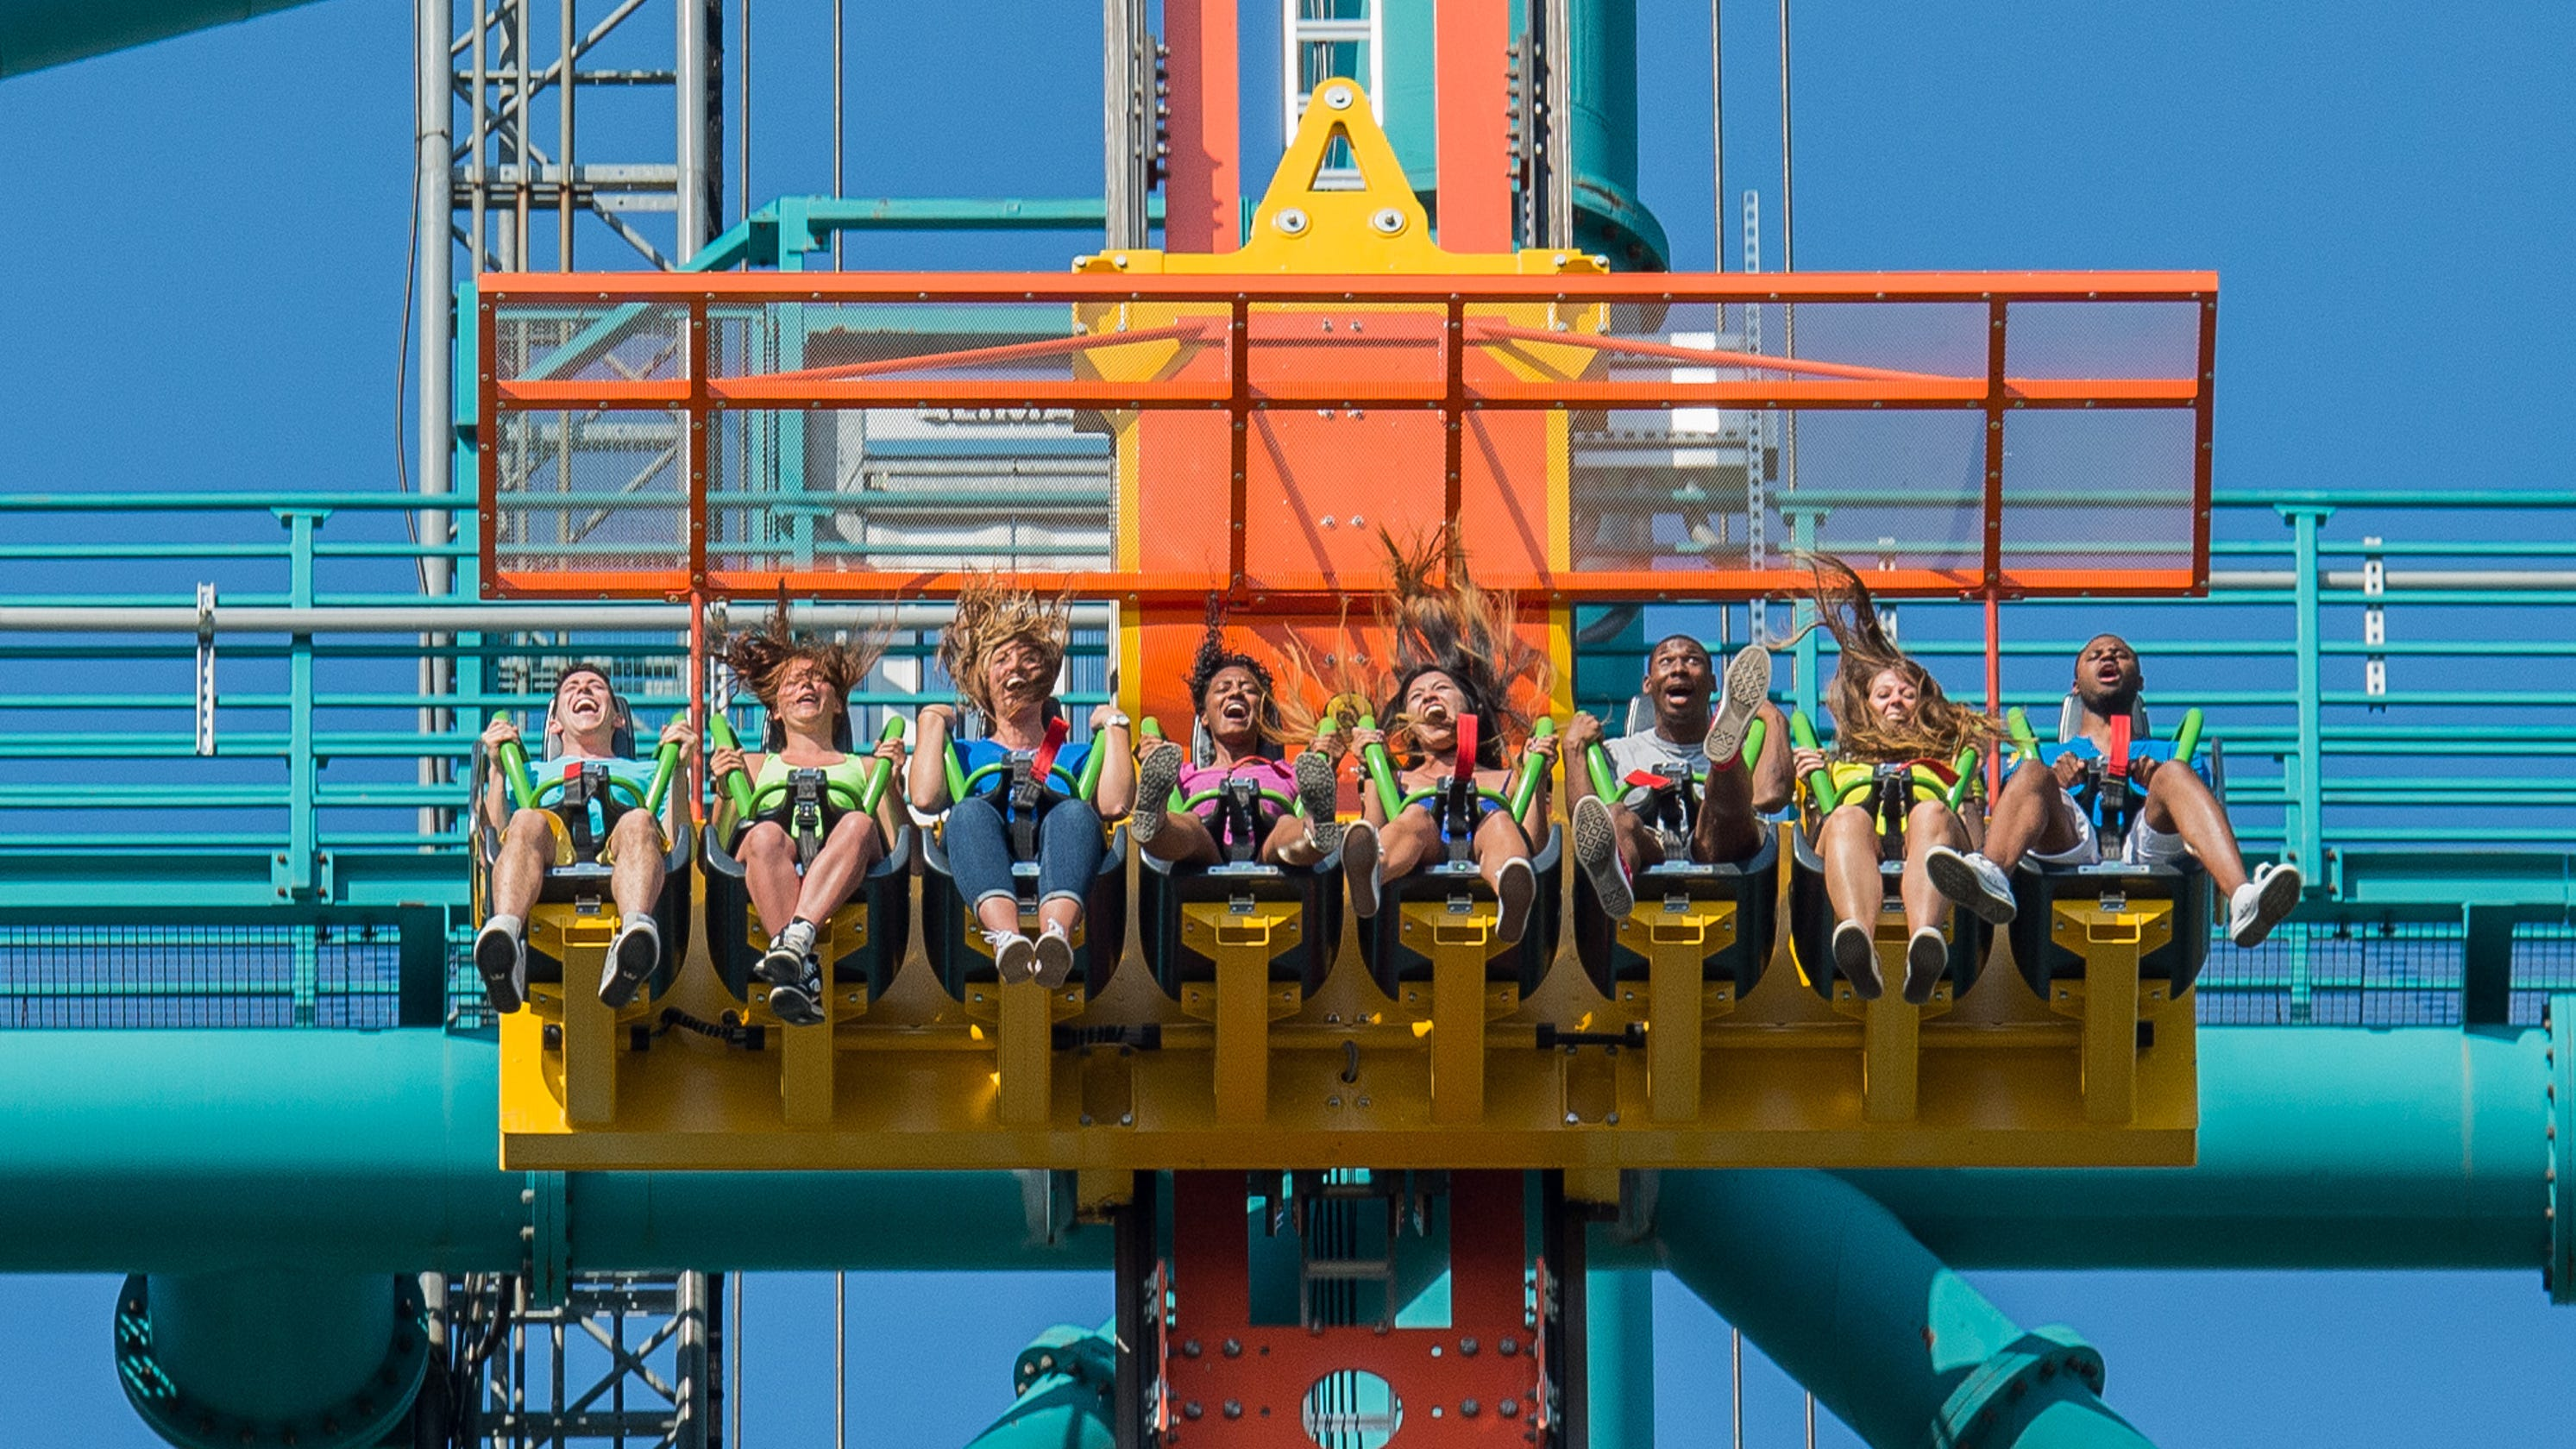 The tallest drop tower rides in North America for thrill seekers